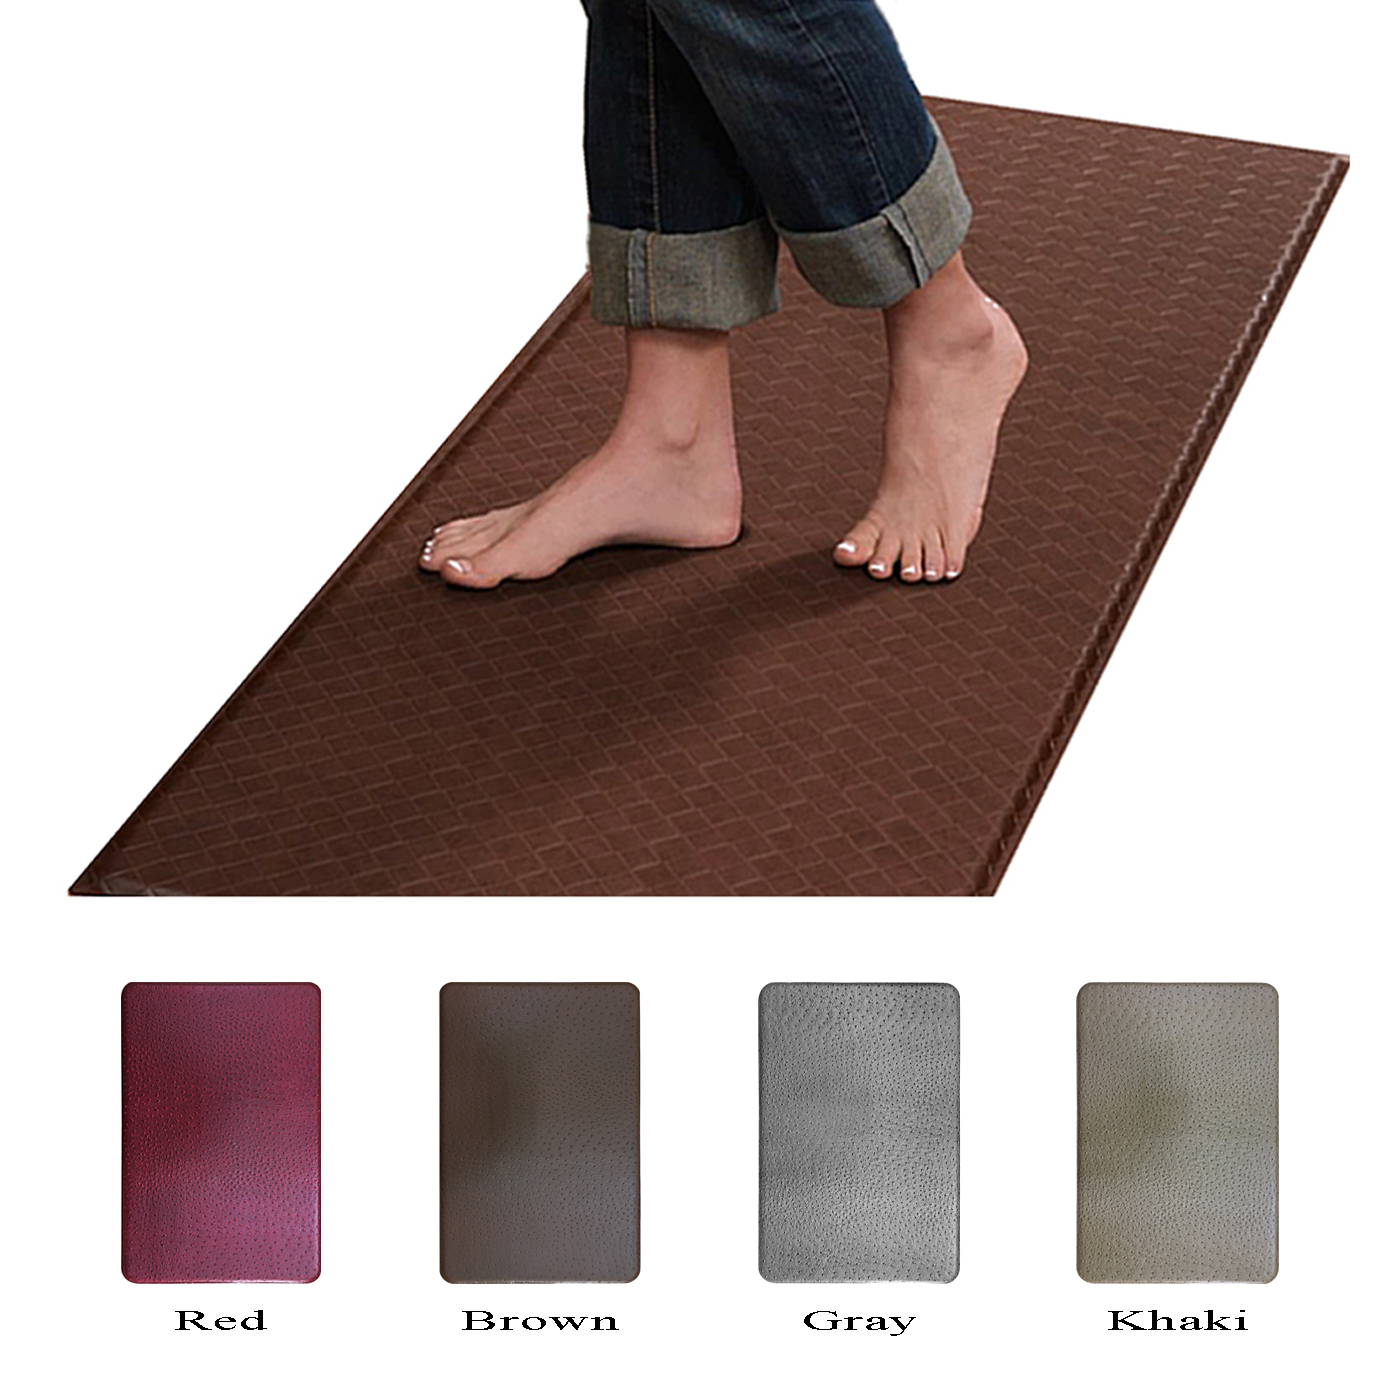 Charmant Cushion Comfort Anti Fatigue Kitchen Floor Mat Rug